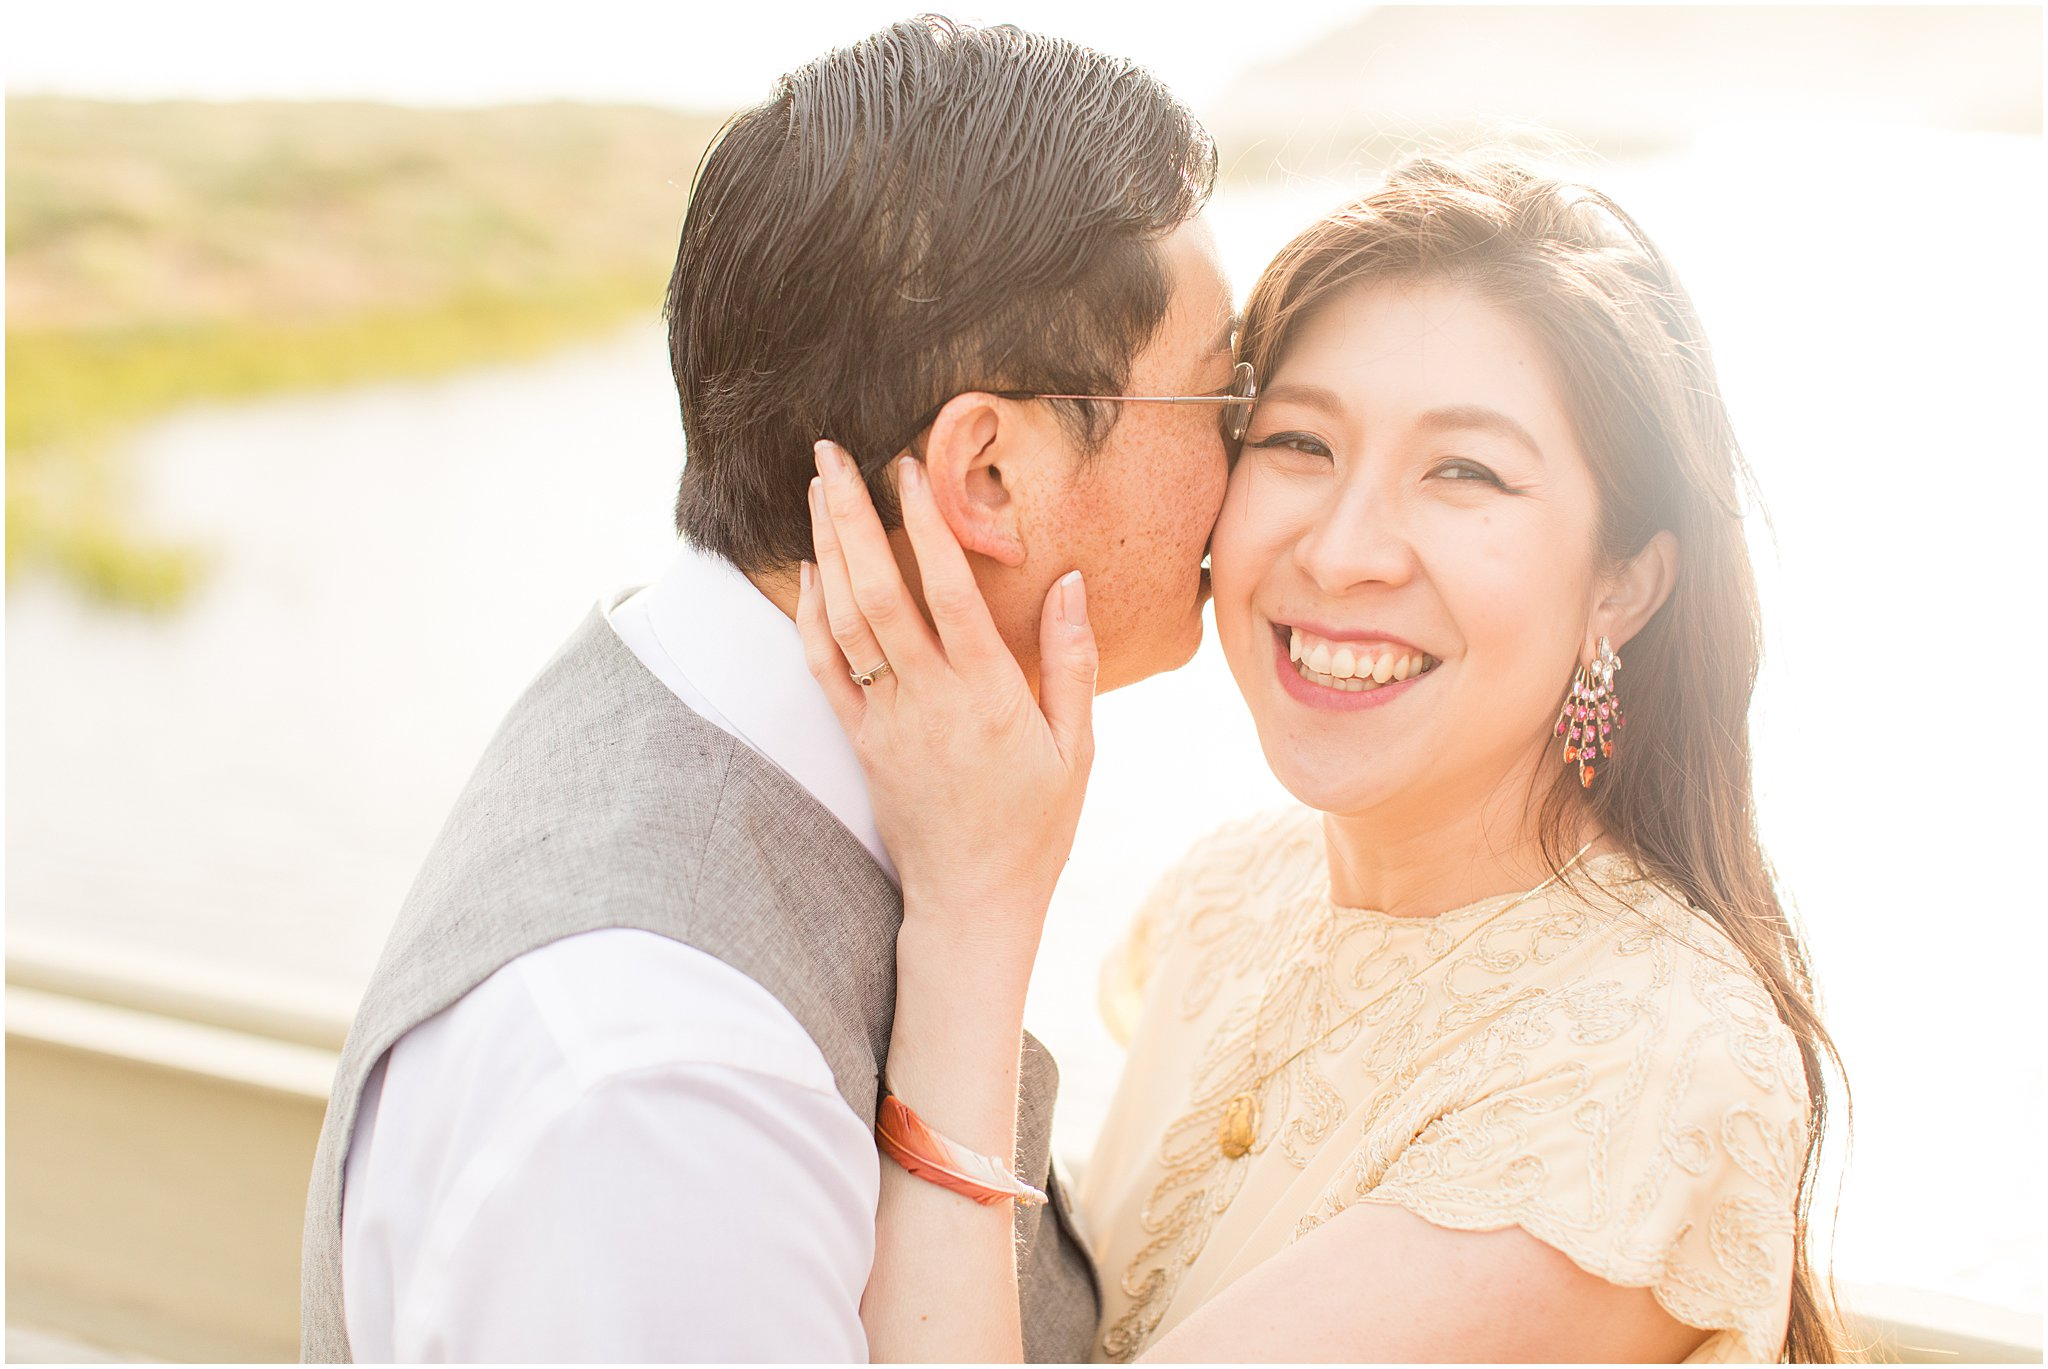 2019 marin headlands san francisco engagement session bay area wedding photographer_0013.jpg